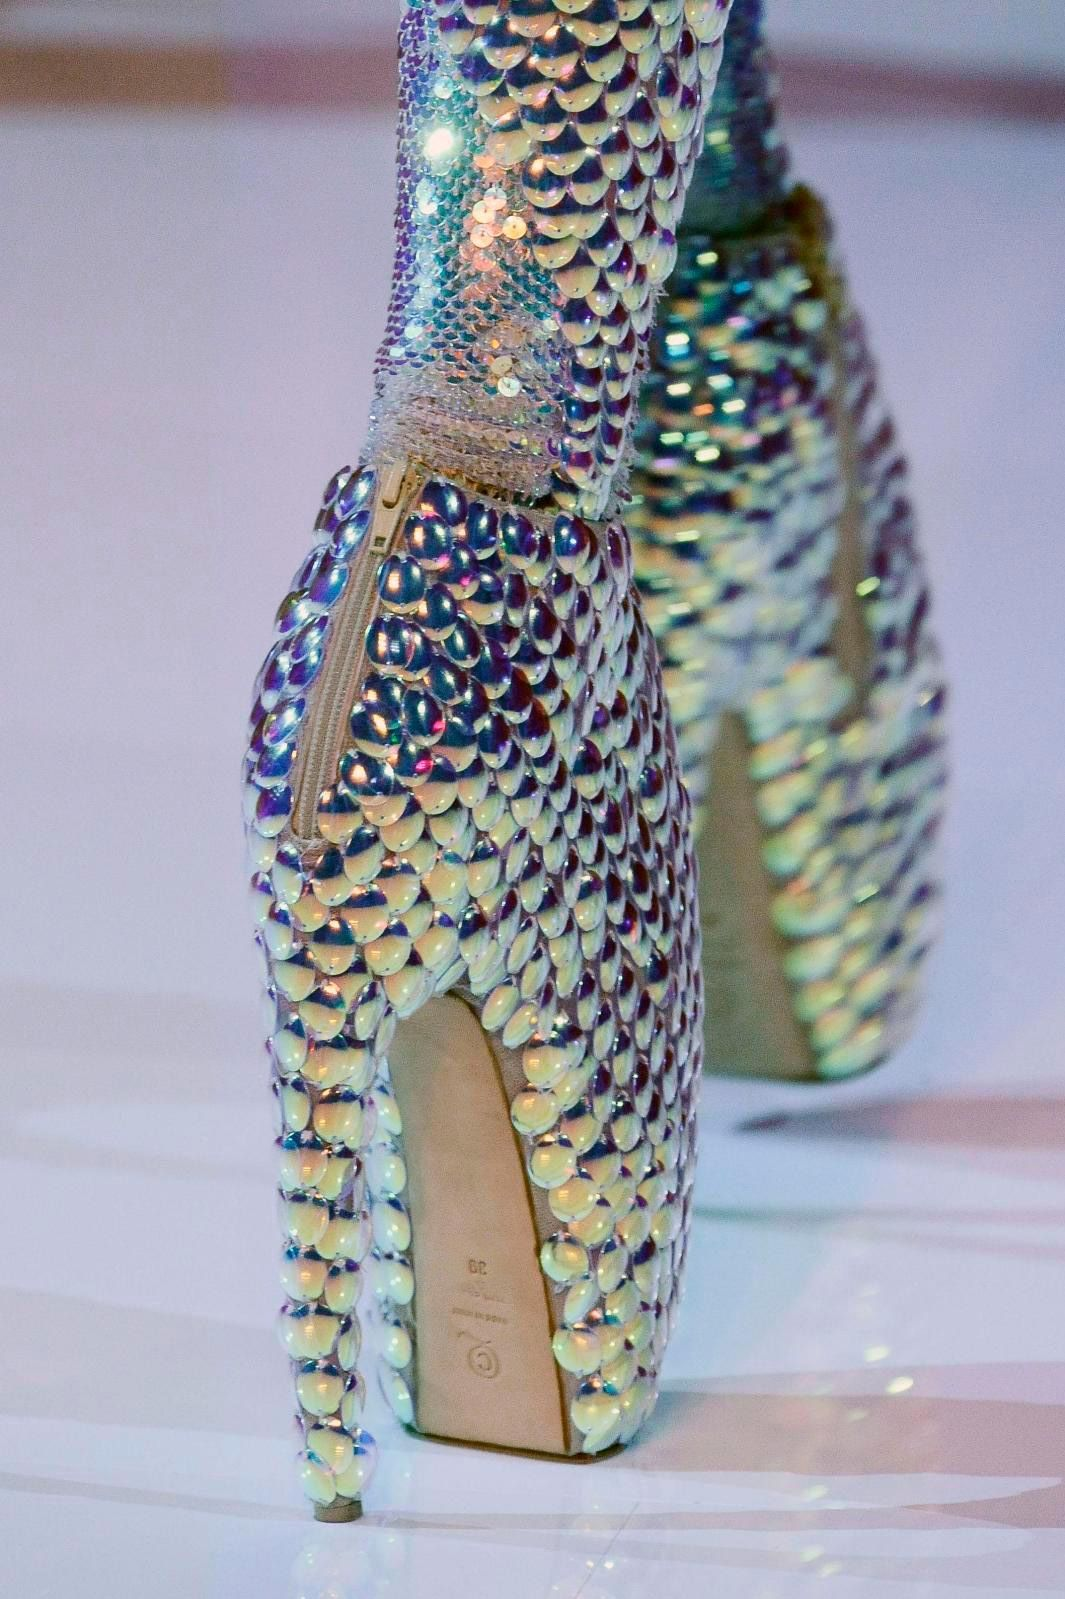 These Alexander McQueen Shoes are so different and out - there who couldnt love…